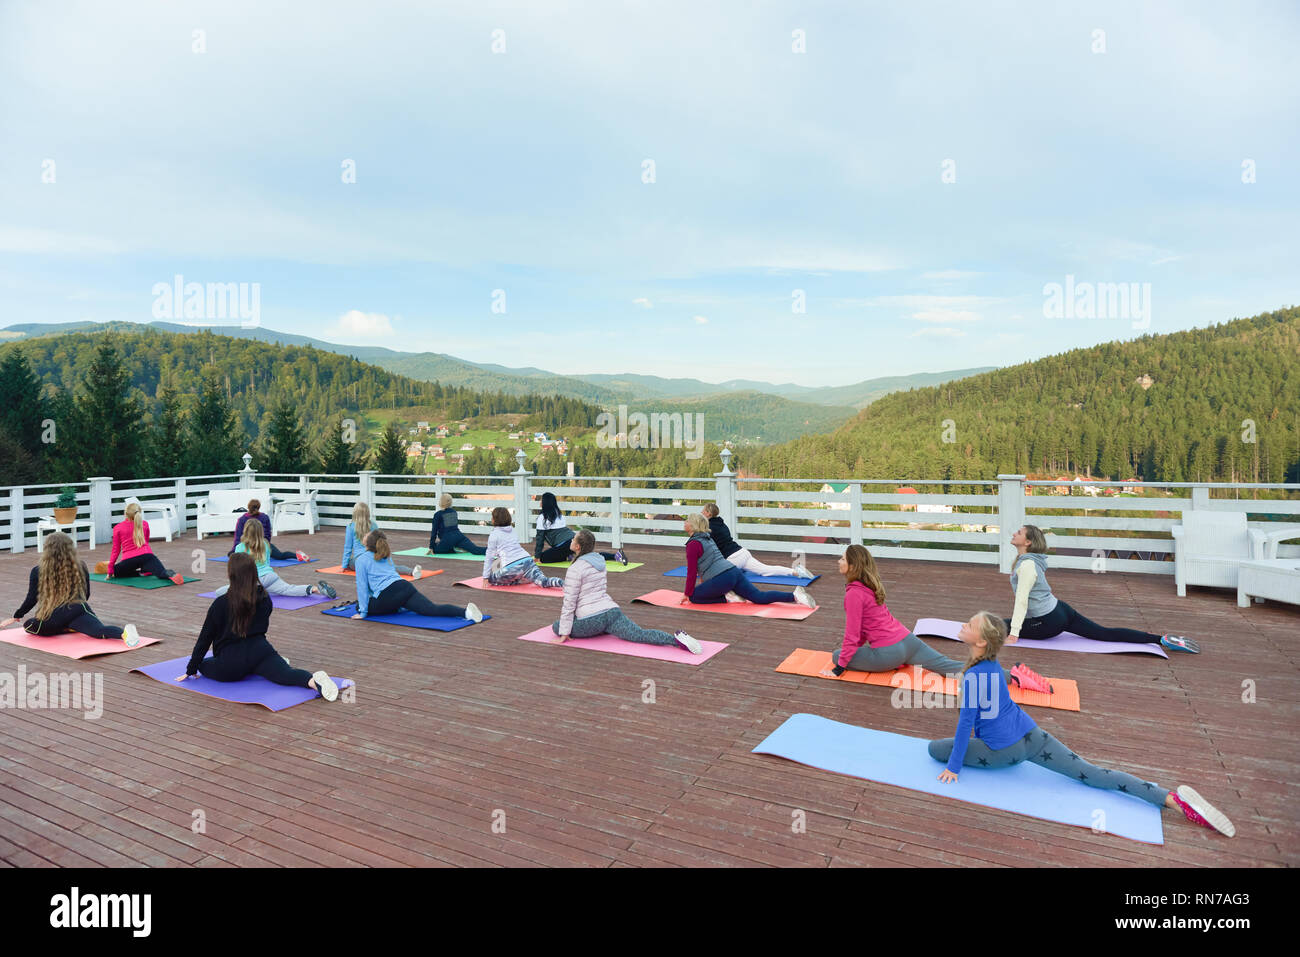 Yoga group doing stretching and yoga on fitness class with coach. Flexible women wearing in sportswear practicing on yoga mats. People exercising on fresh air in mountains. - Stock Image